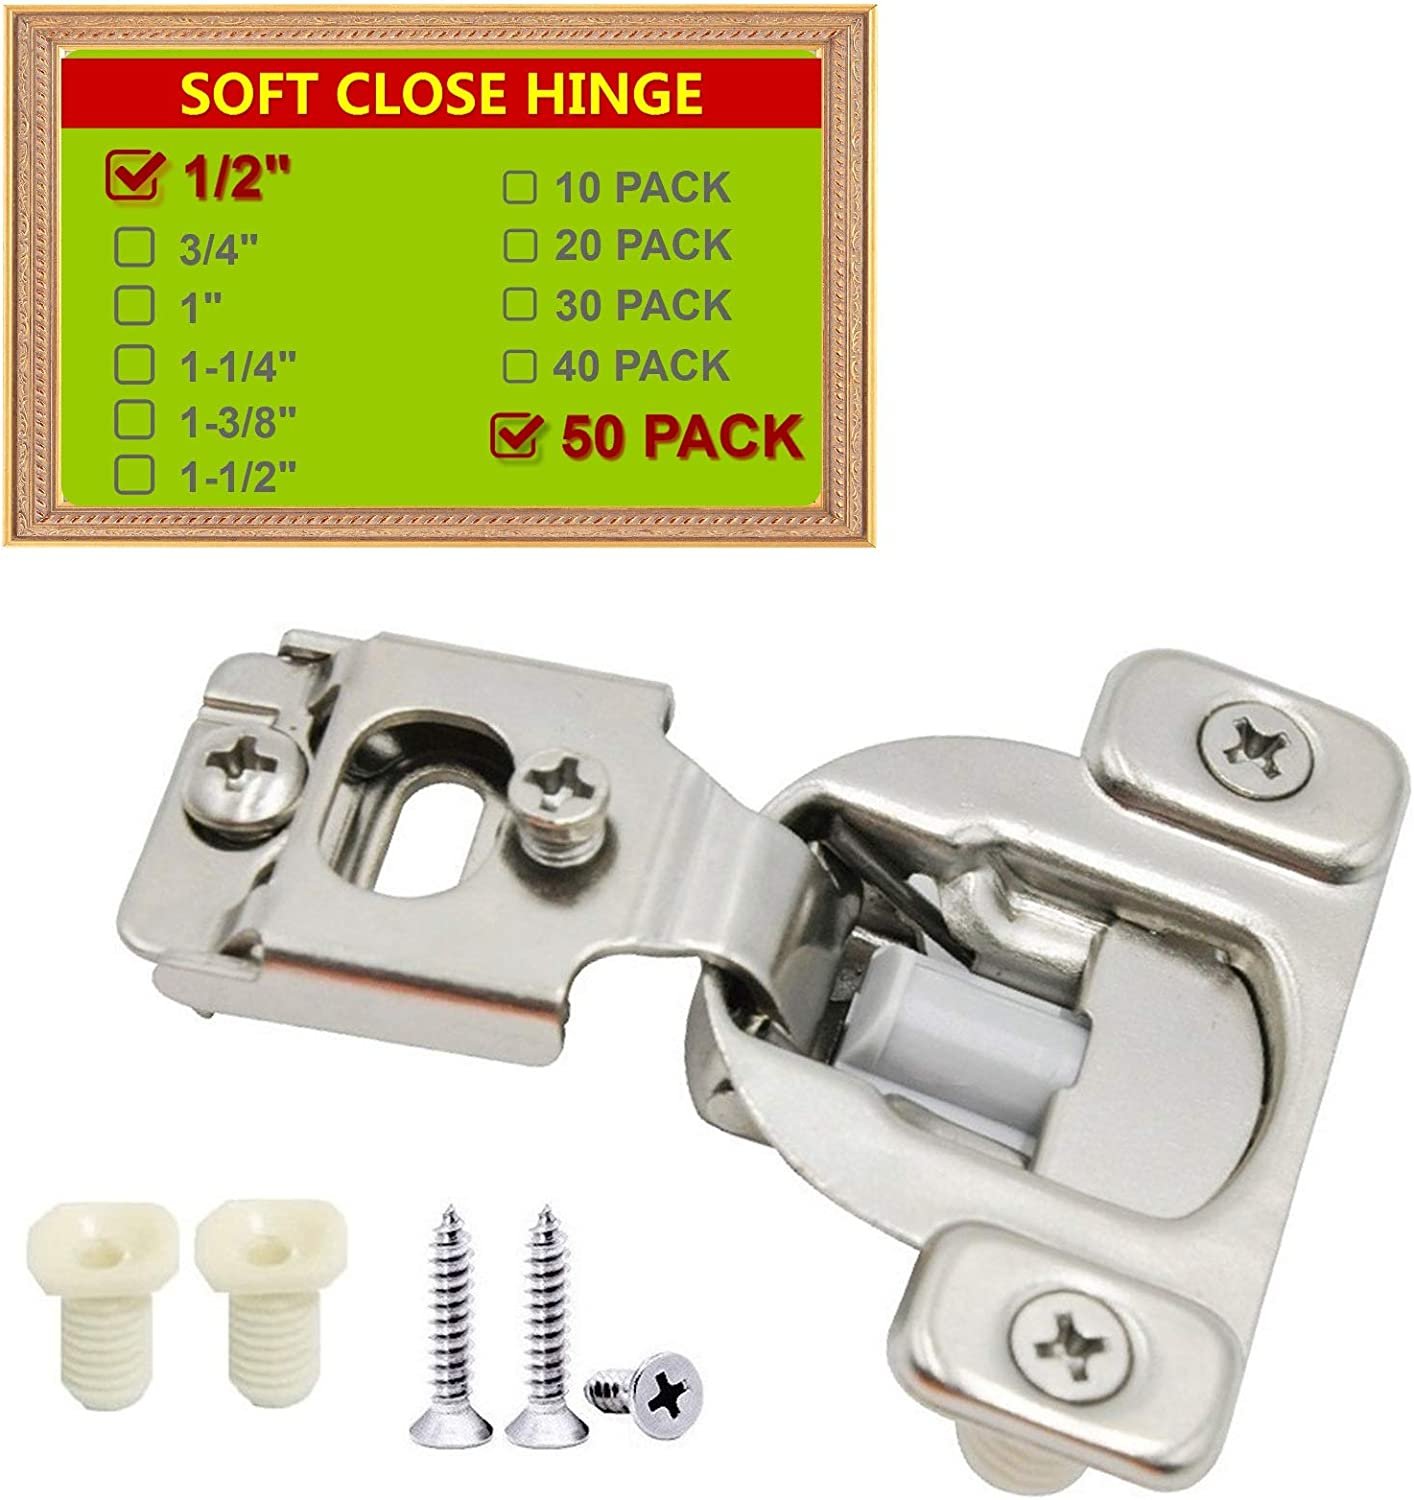 STIANC Face Frame Soft Close Hinge Cabinet Kitchen Compact Ranking TOP6 105° New Free Shipping